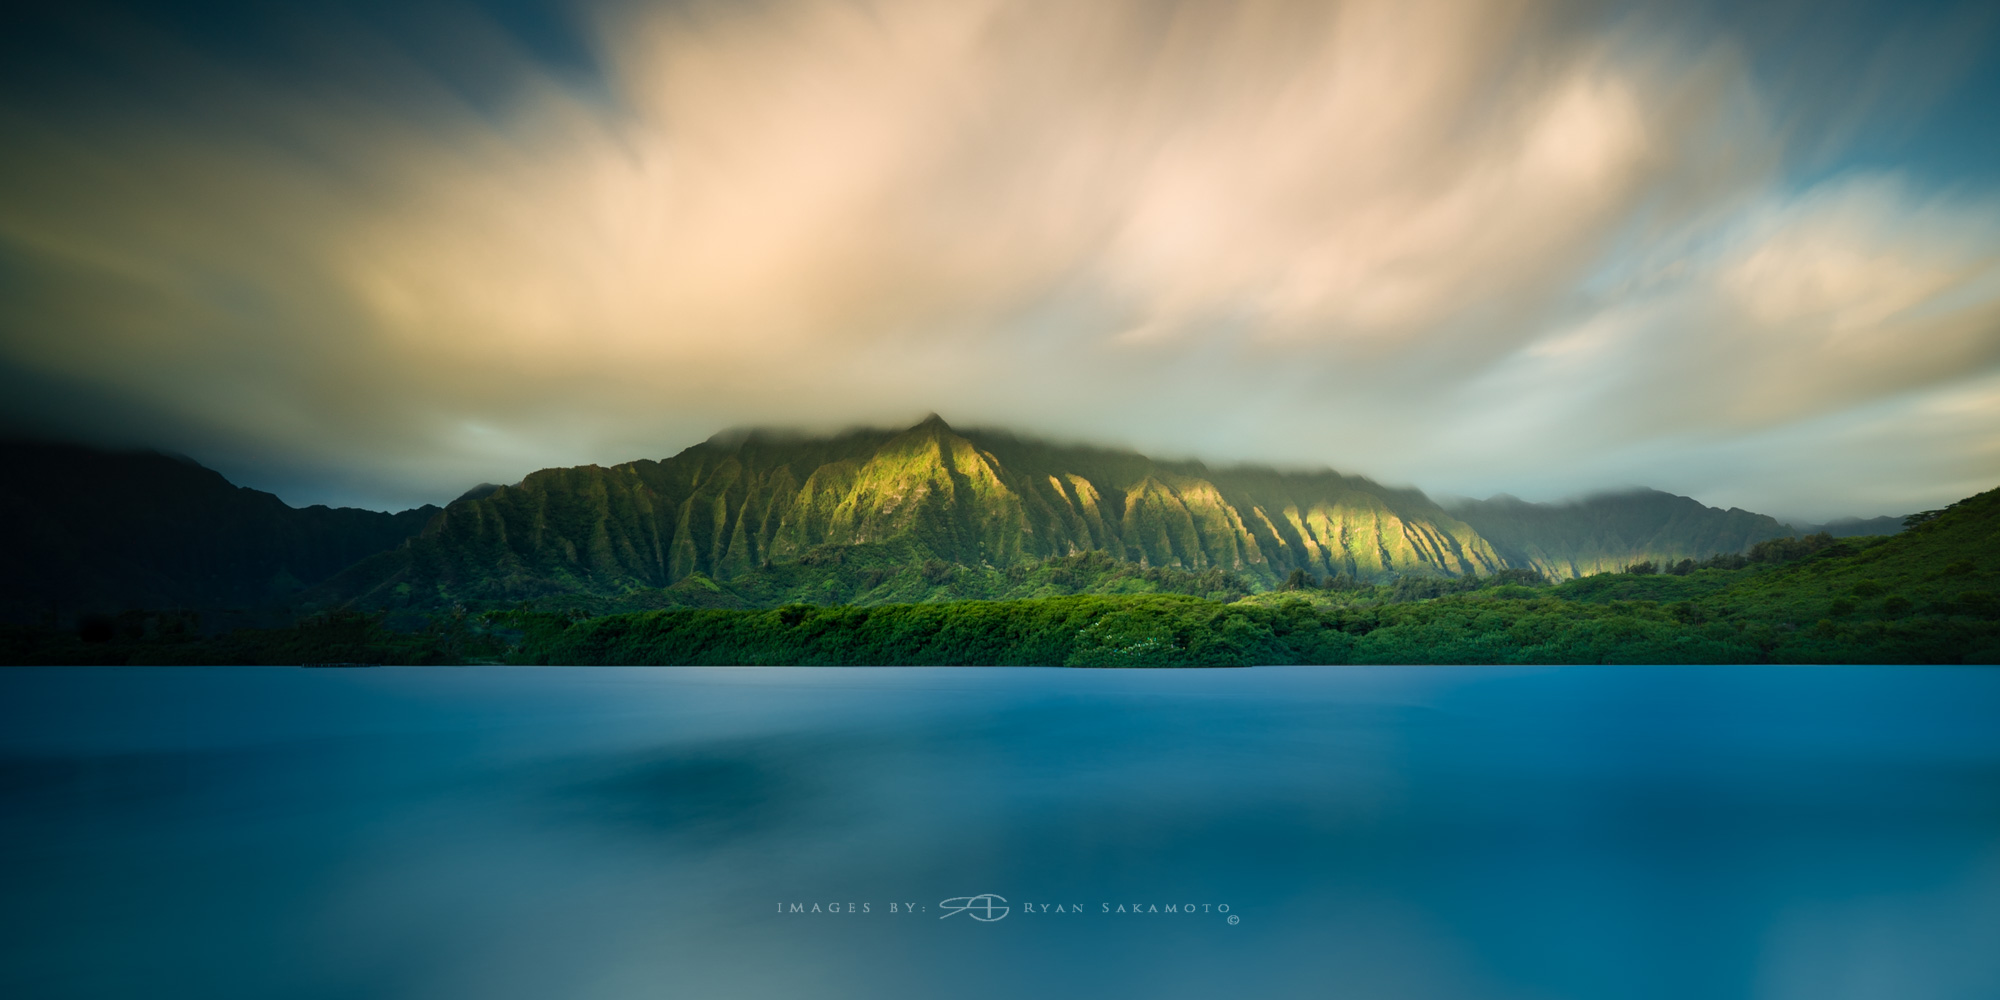 Sunrise from Paepae o He'eia Fish Pond Lee Filter Big Stopper & 3 stop medium grad Sony A7S II |  181 sec. |  f/8  |  ISO 50  |  Zeiss Batis 18mm  Edited in Lightroom & Photoshop CC 2015  Copyright 2016 Ryan Sakamoto, All rights reserved